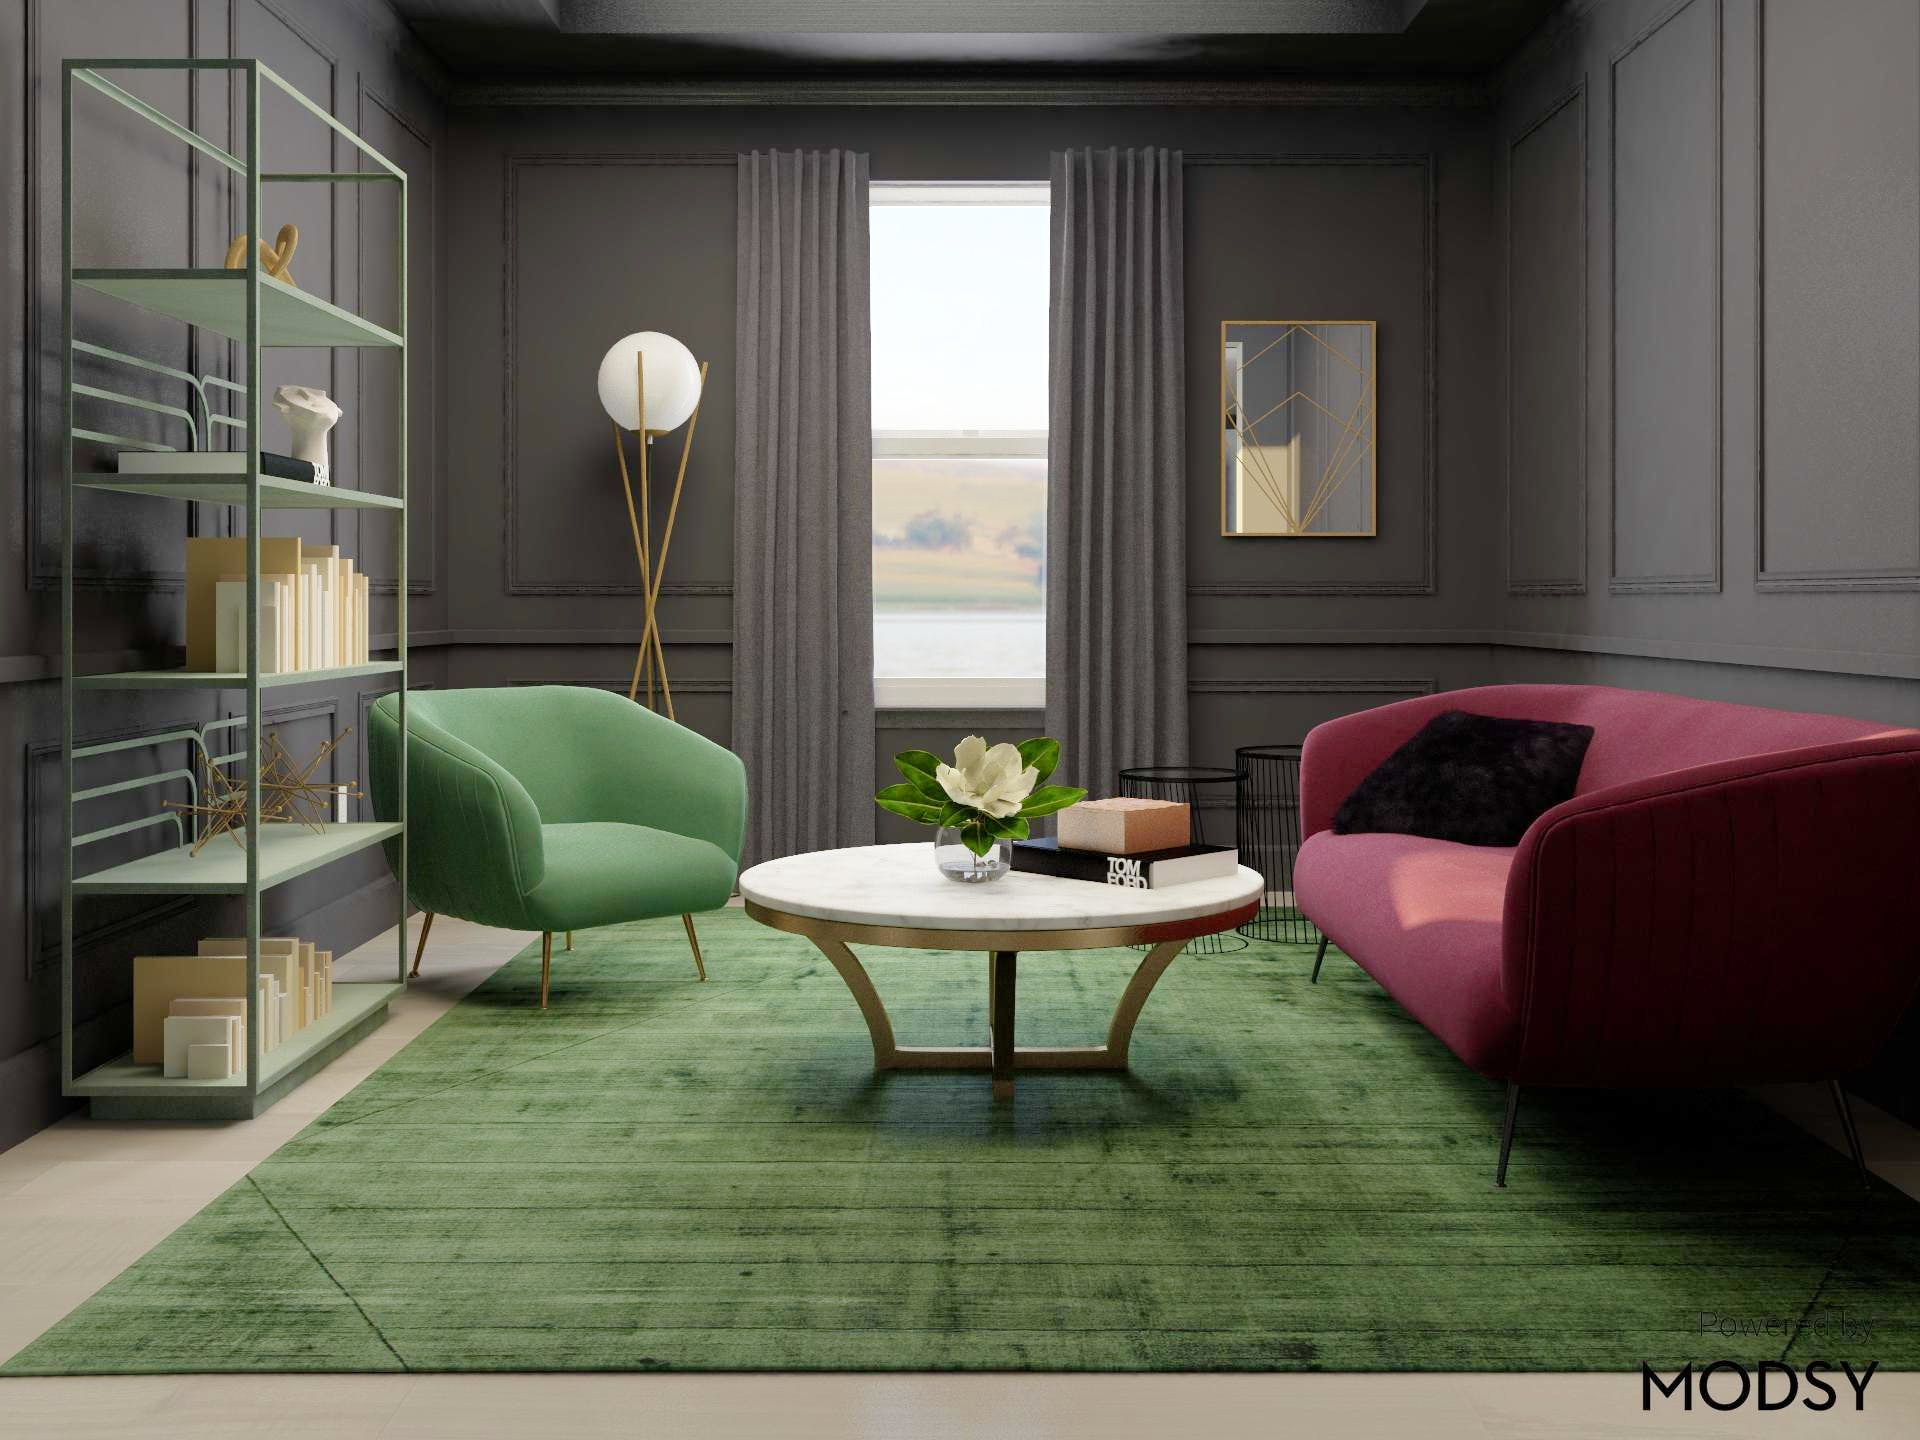 Deco Glam Living Room in Mysterious Jewel Tones